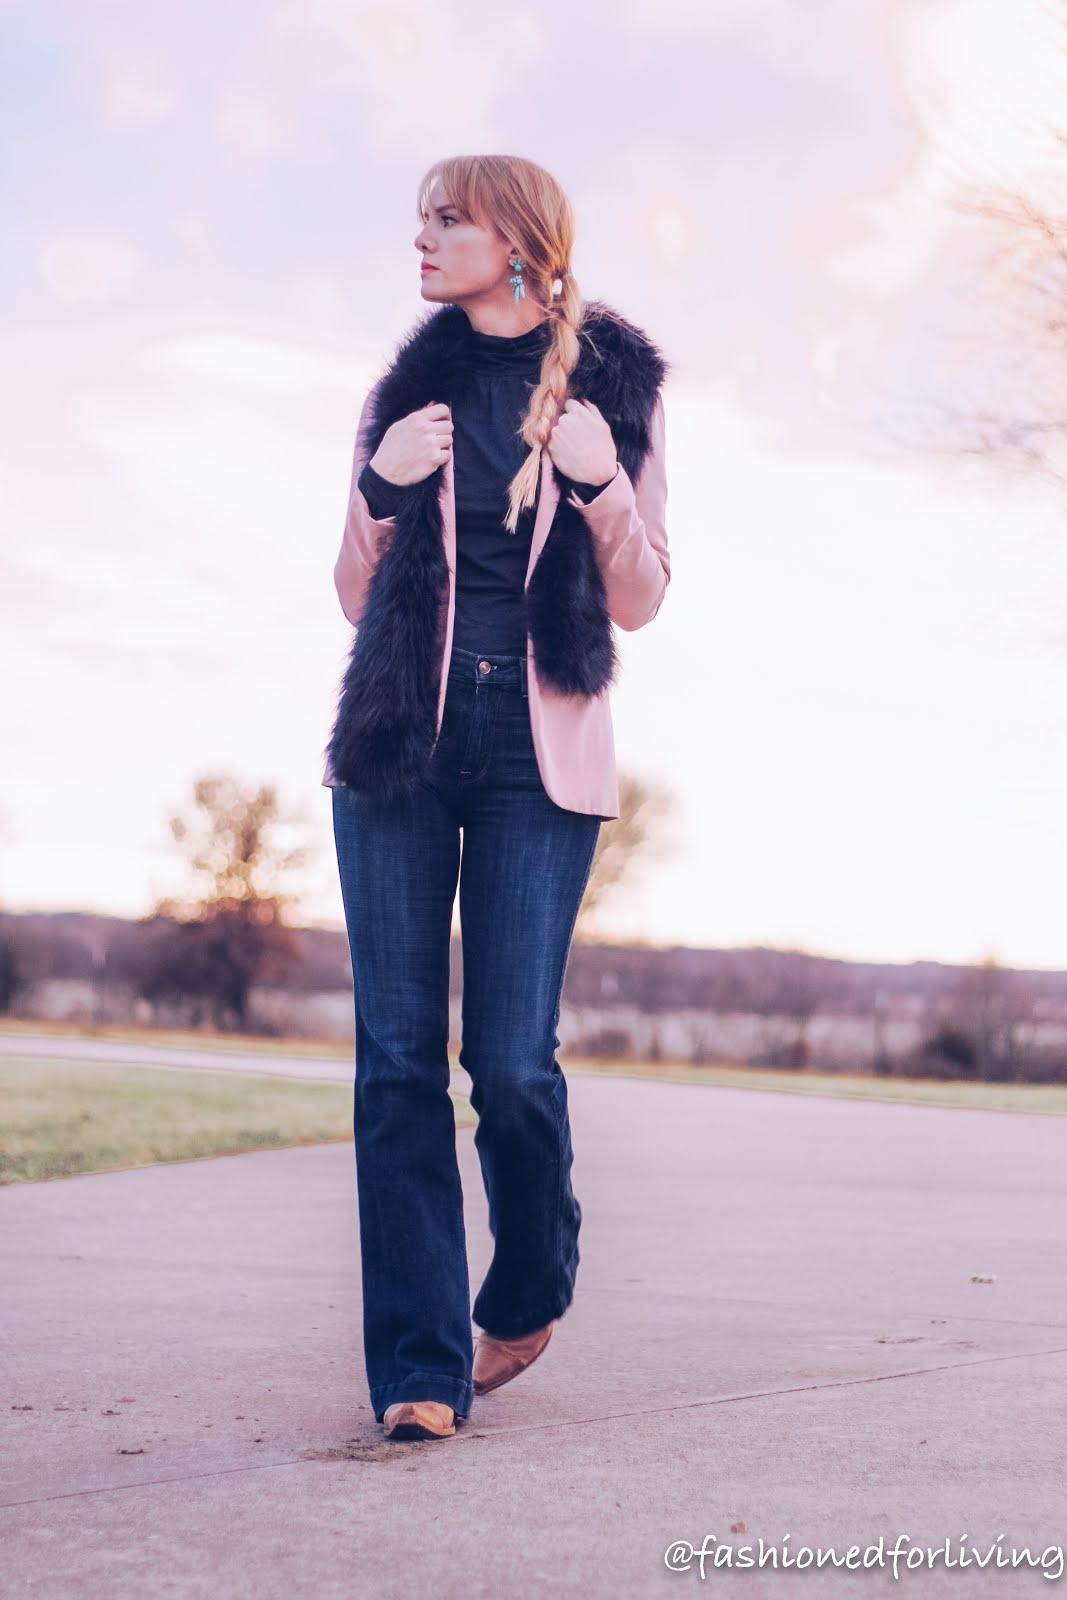 womens cowboy boots and jeans outfit with blush blazer and fur stole